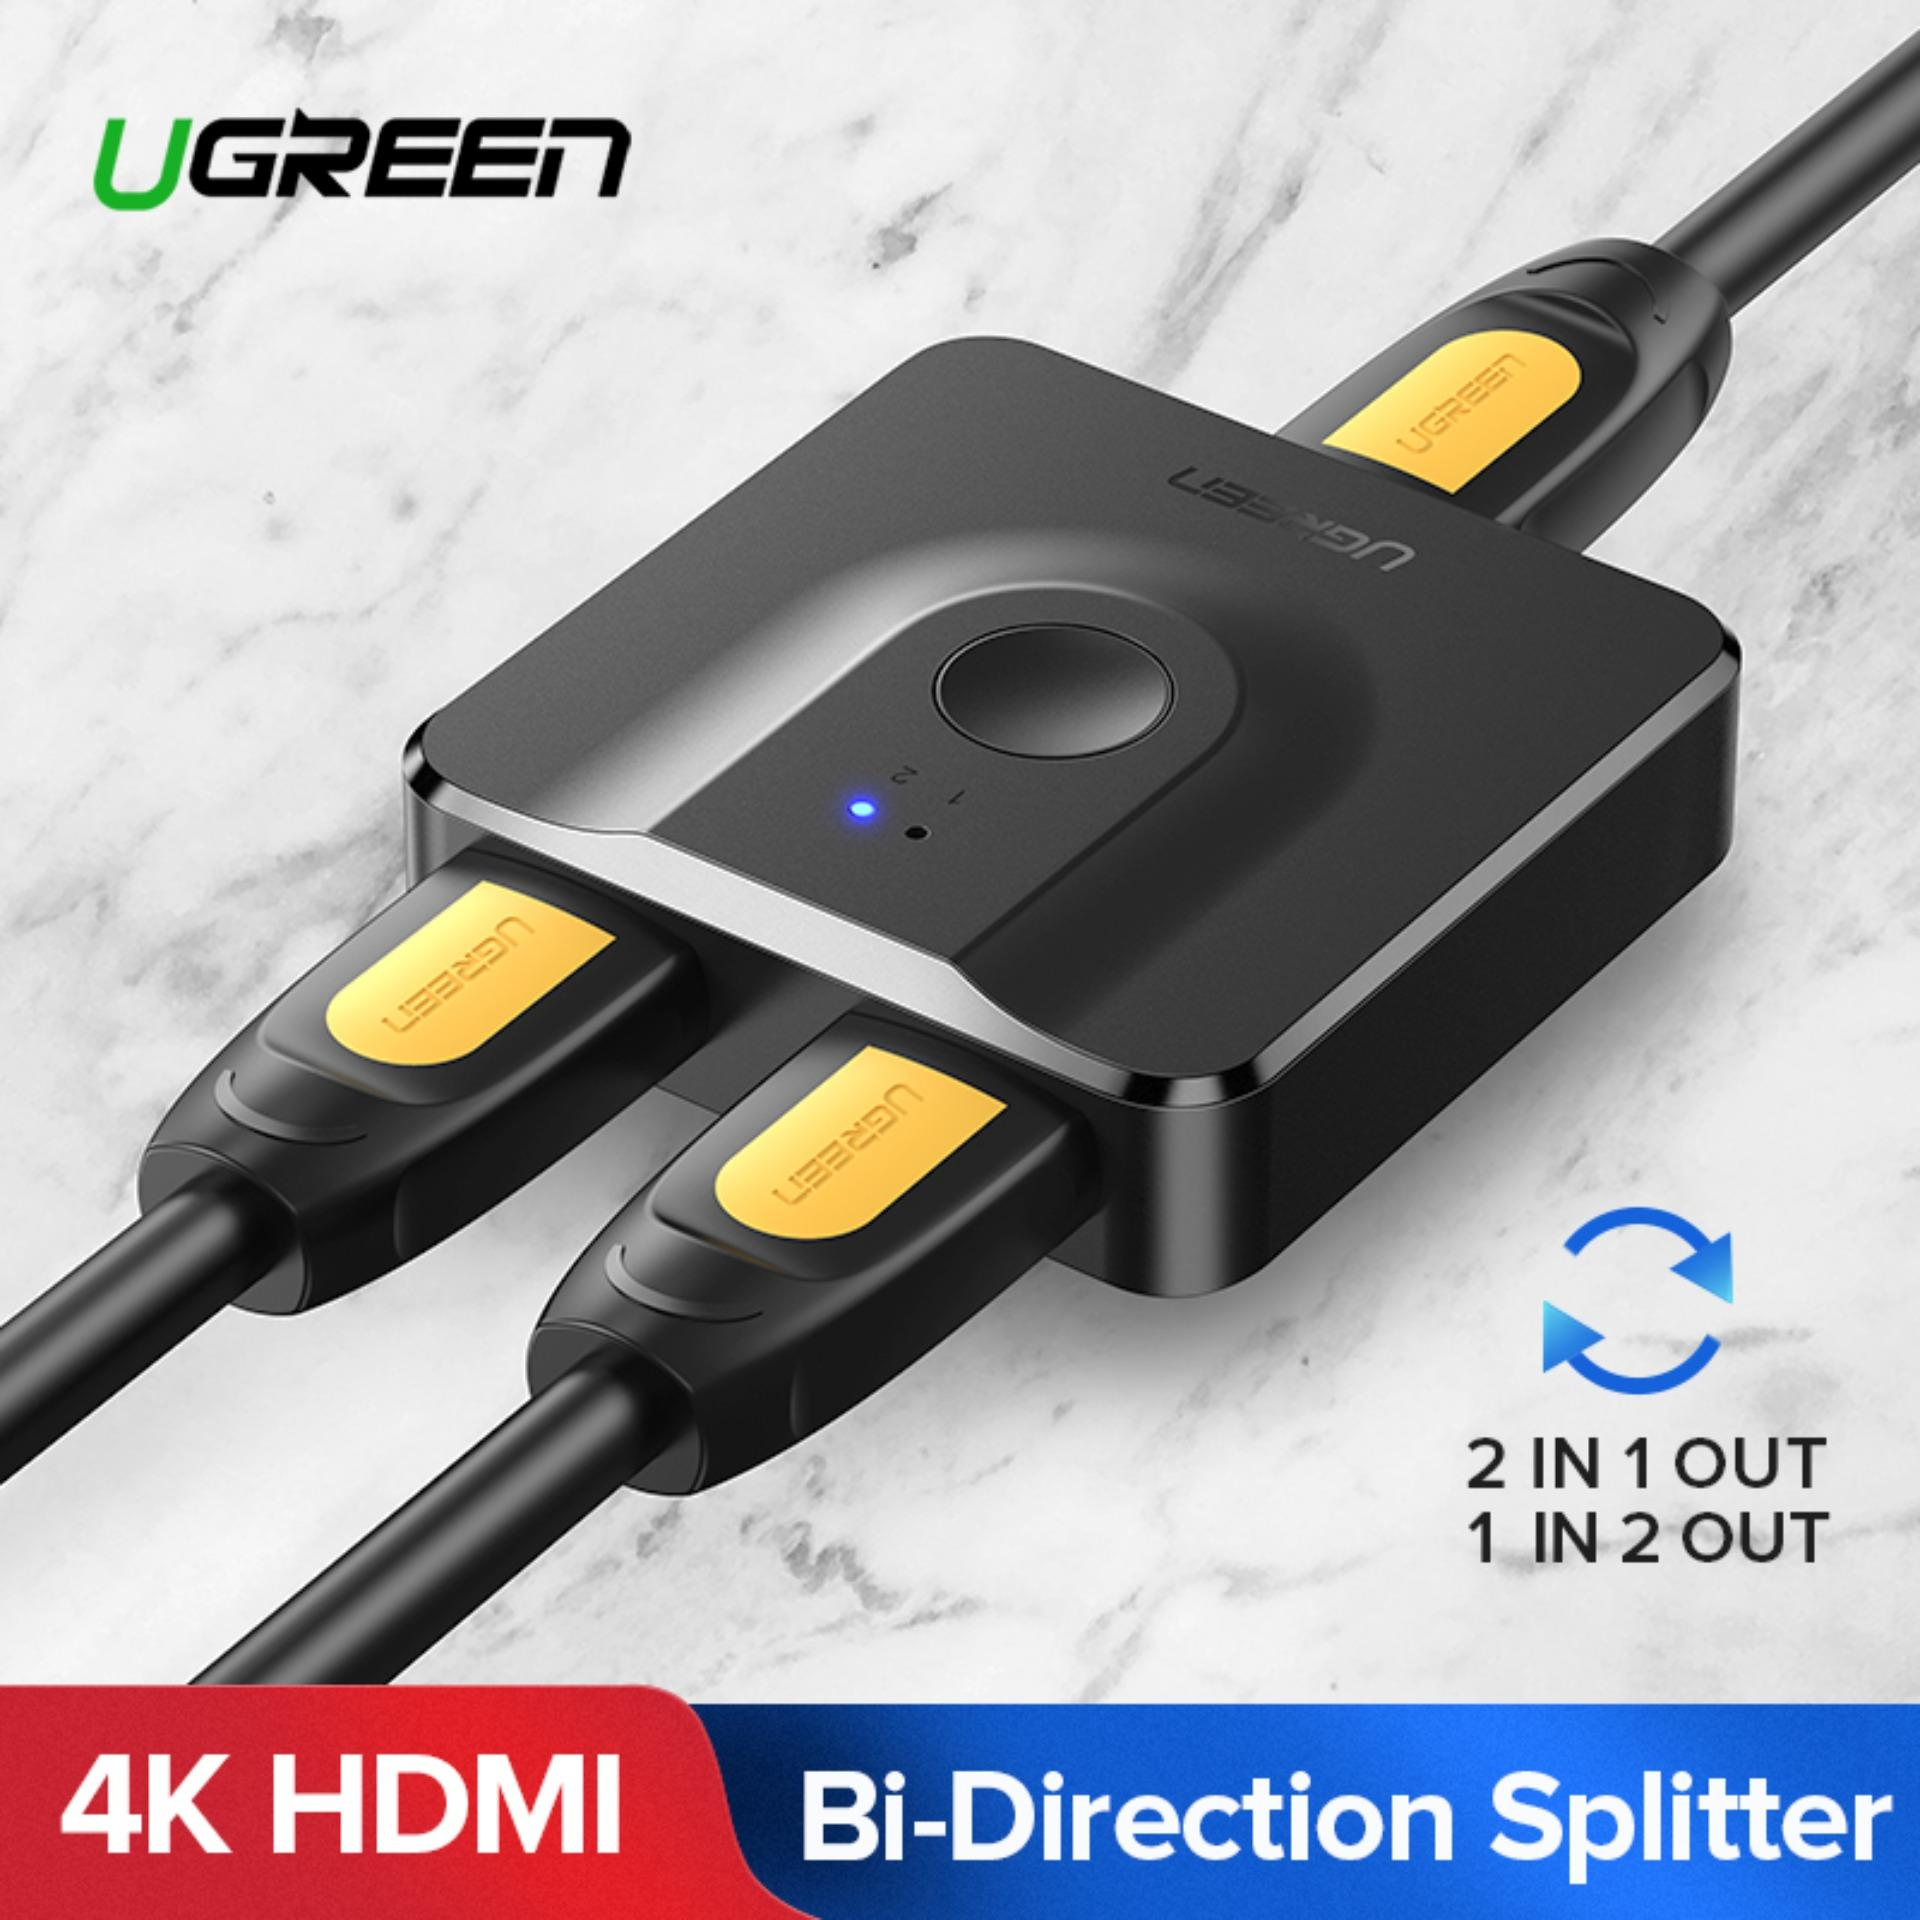 UGREEN HDMI Splitter Switch Bi-Direction 4K HDMI Switcher 1x2/2x1 Adapter 2  in 1 out Converter for PS4/3 TV Box-Intl